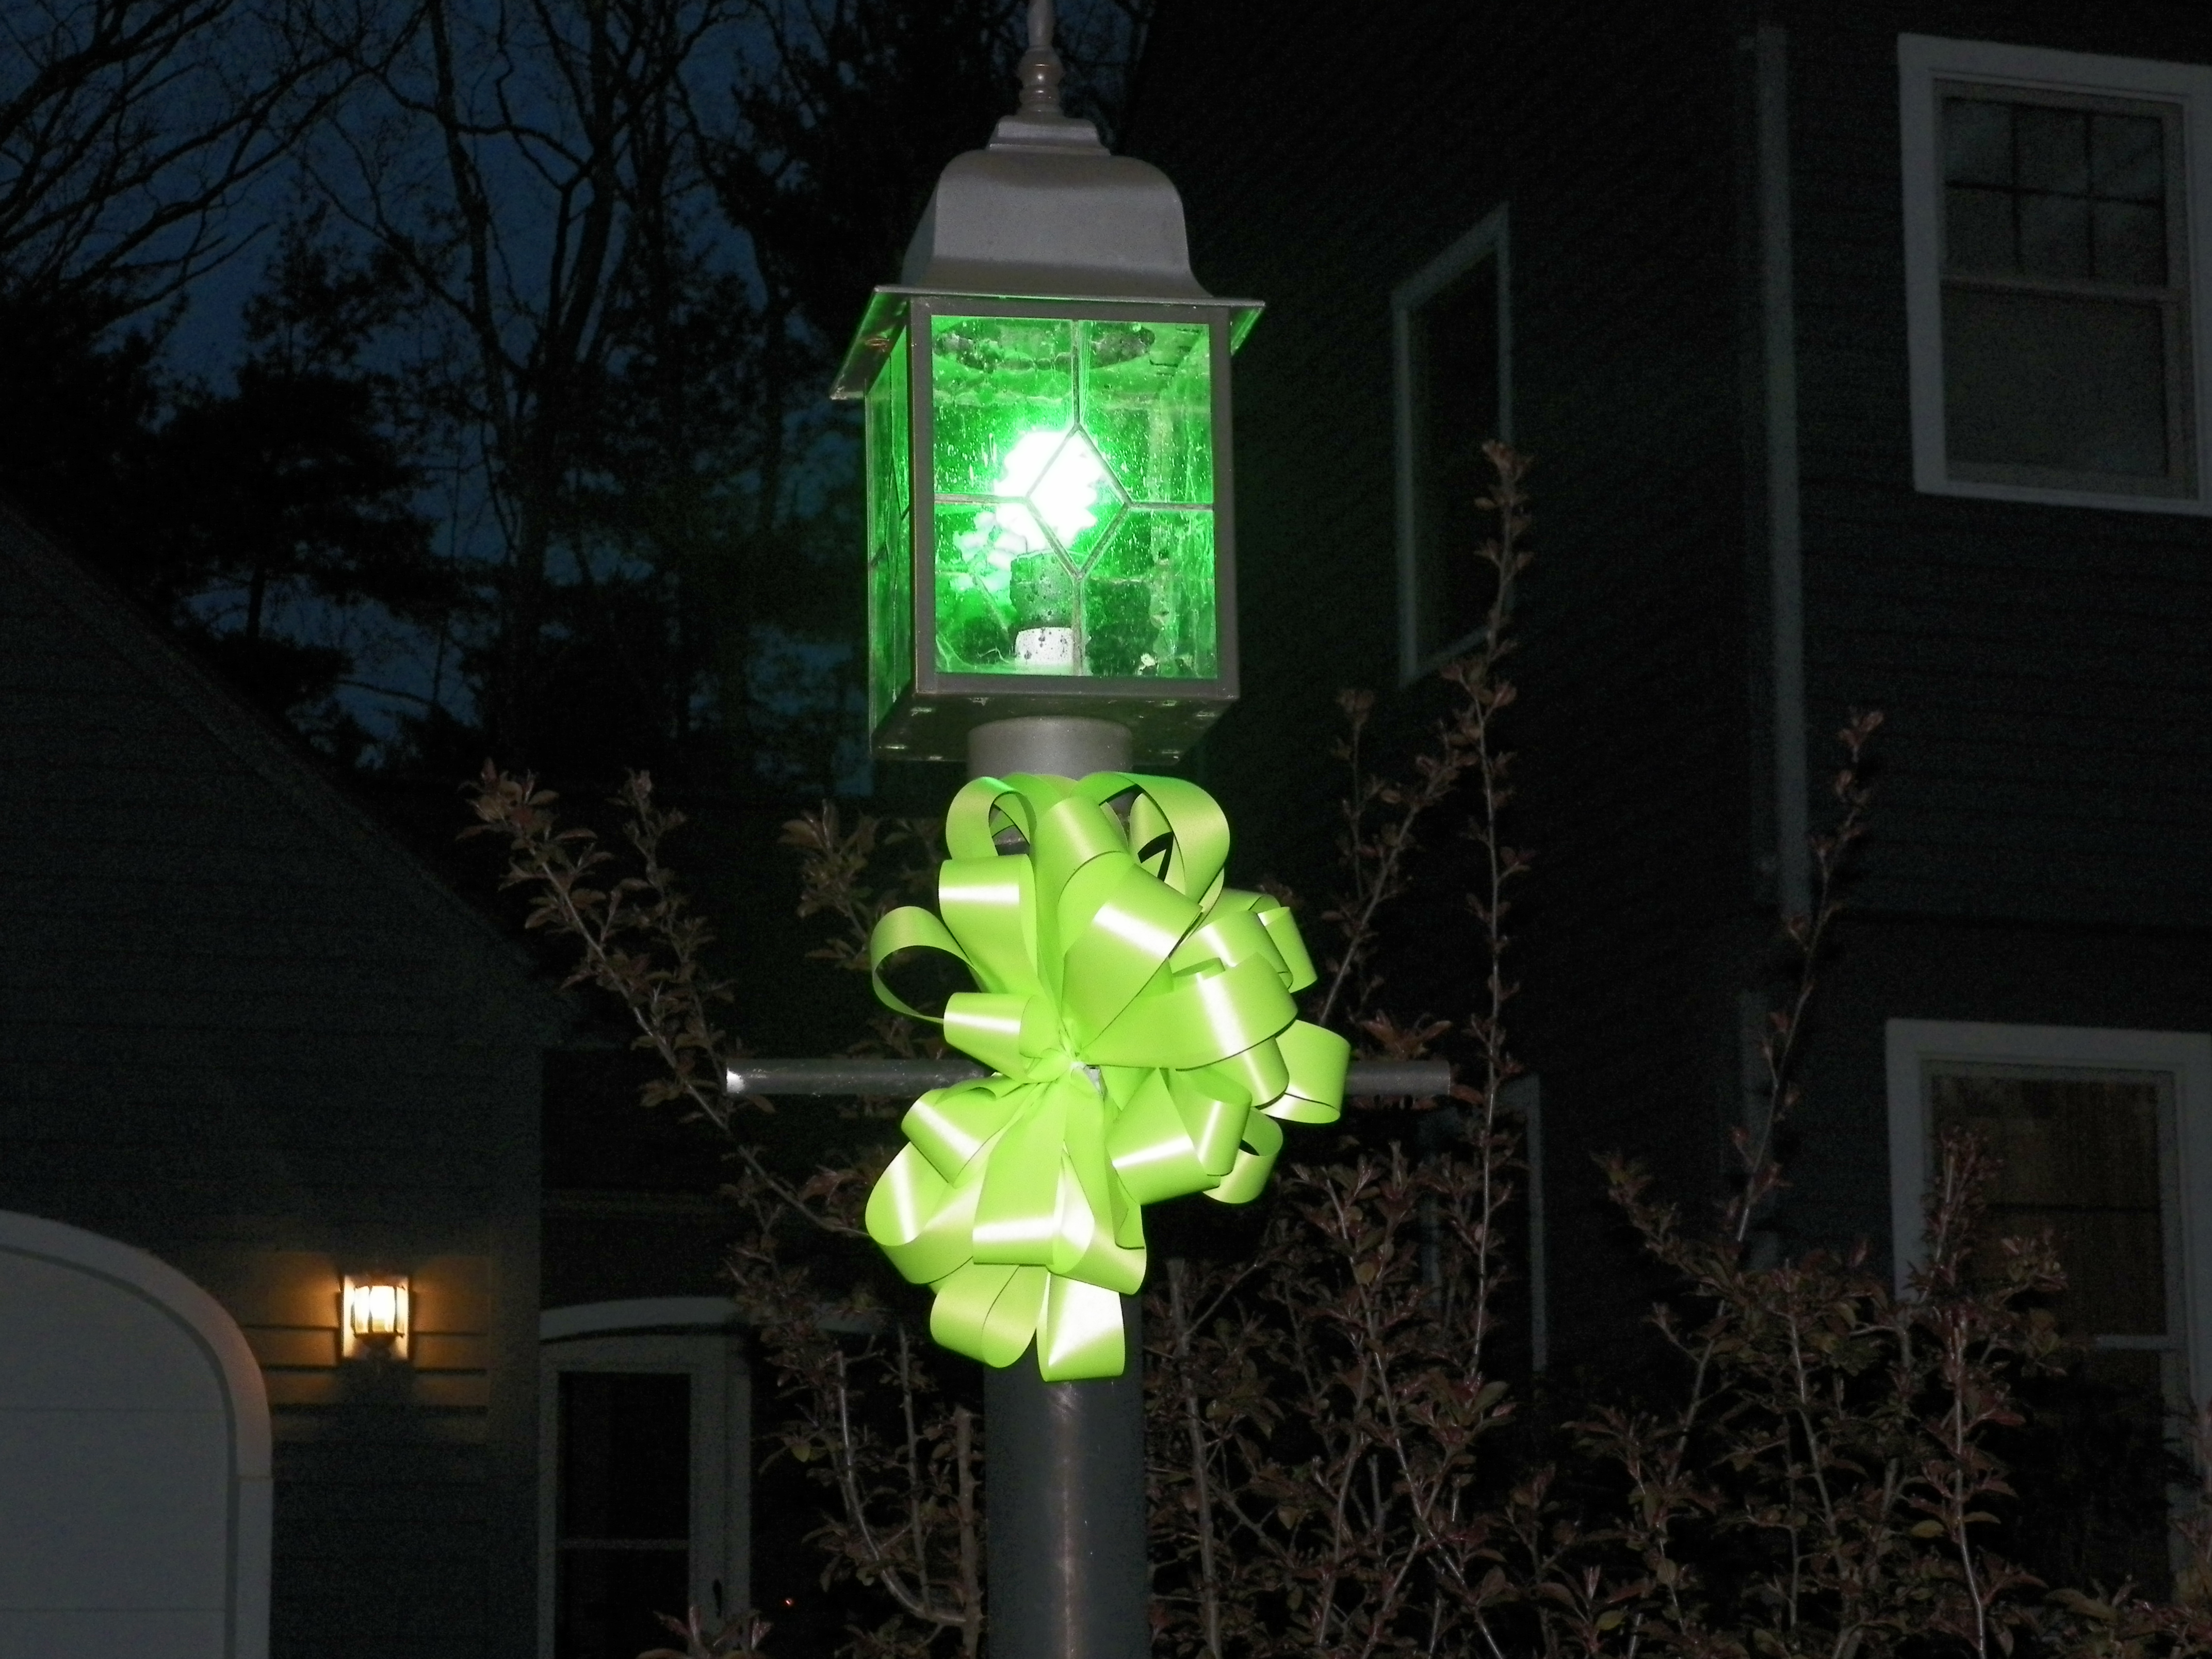 Ribbons Across America and Green Lights for Awareness!